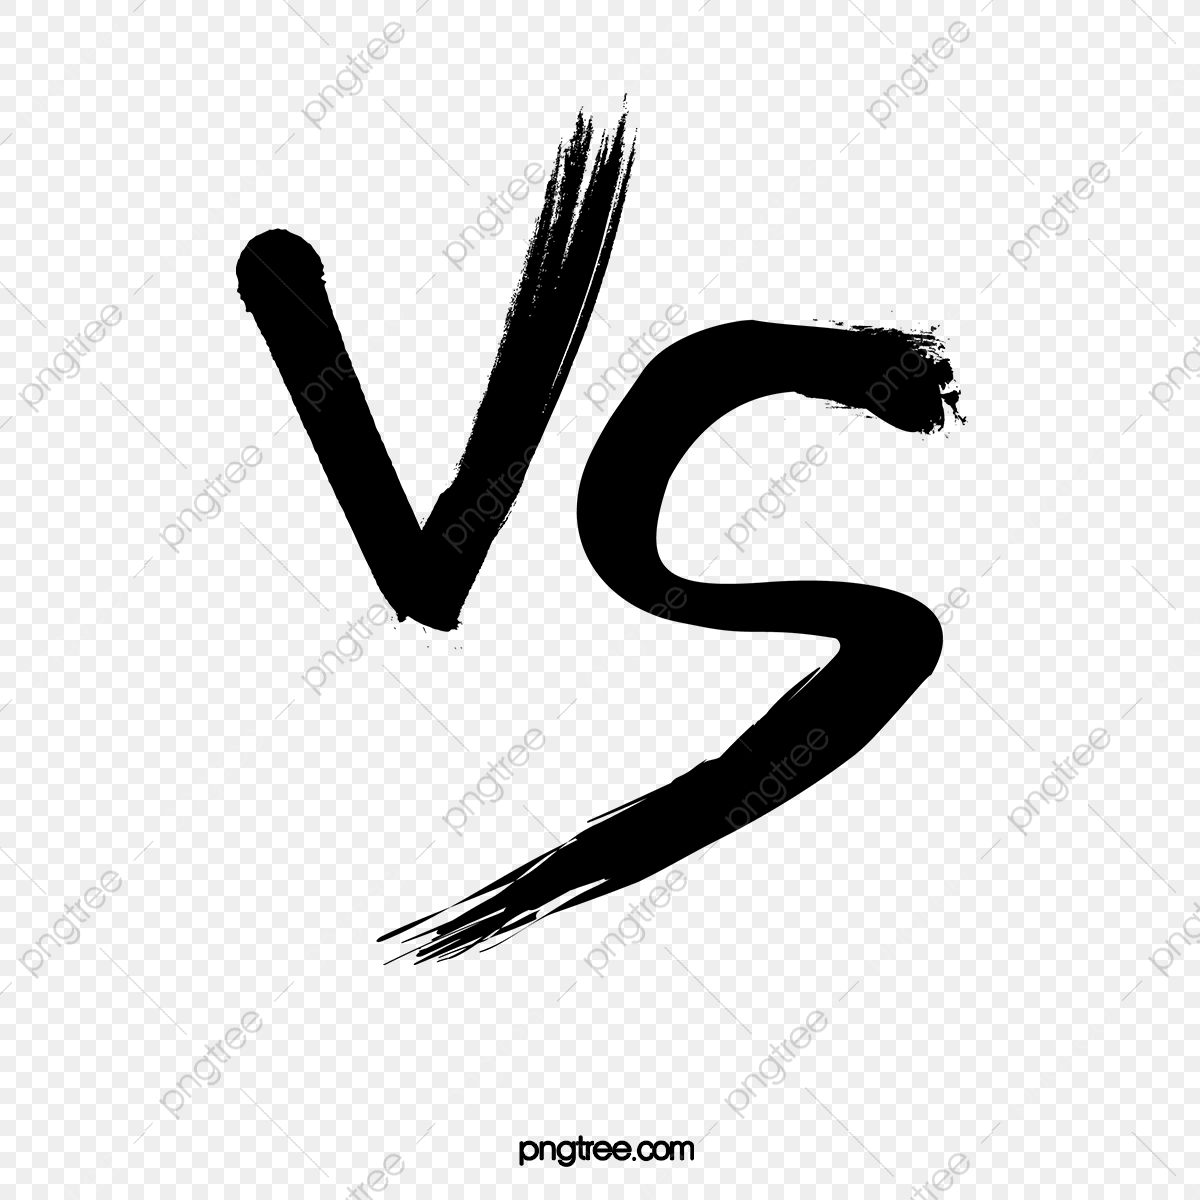 Vs, Showdown, Competition, Ultimate Pk PNG and Vector with ...